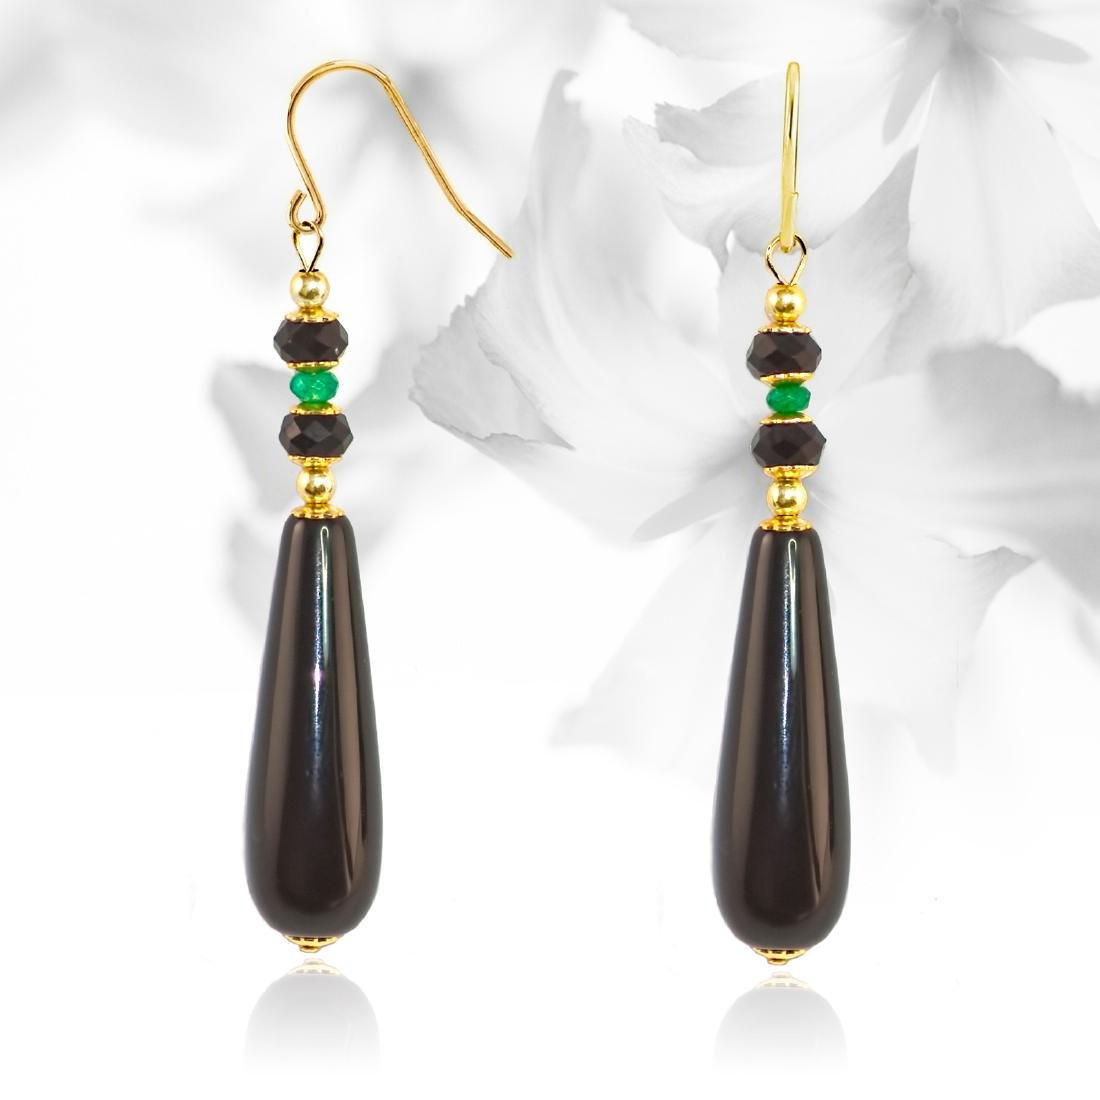 Art Nouveau Style Earrings with Black Onyx and Precious